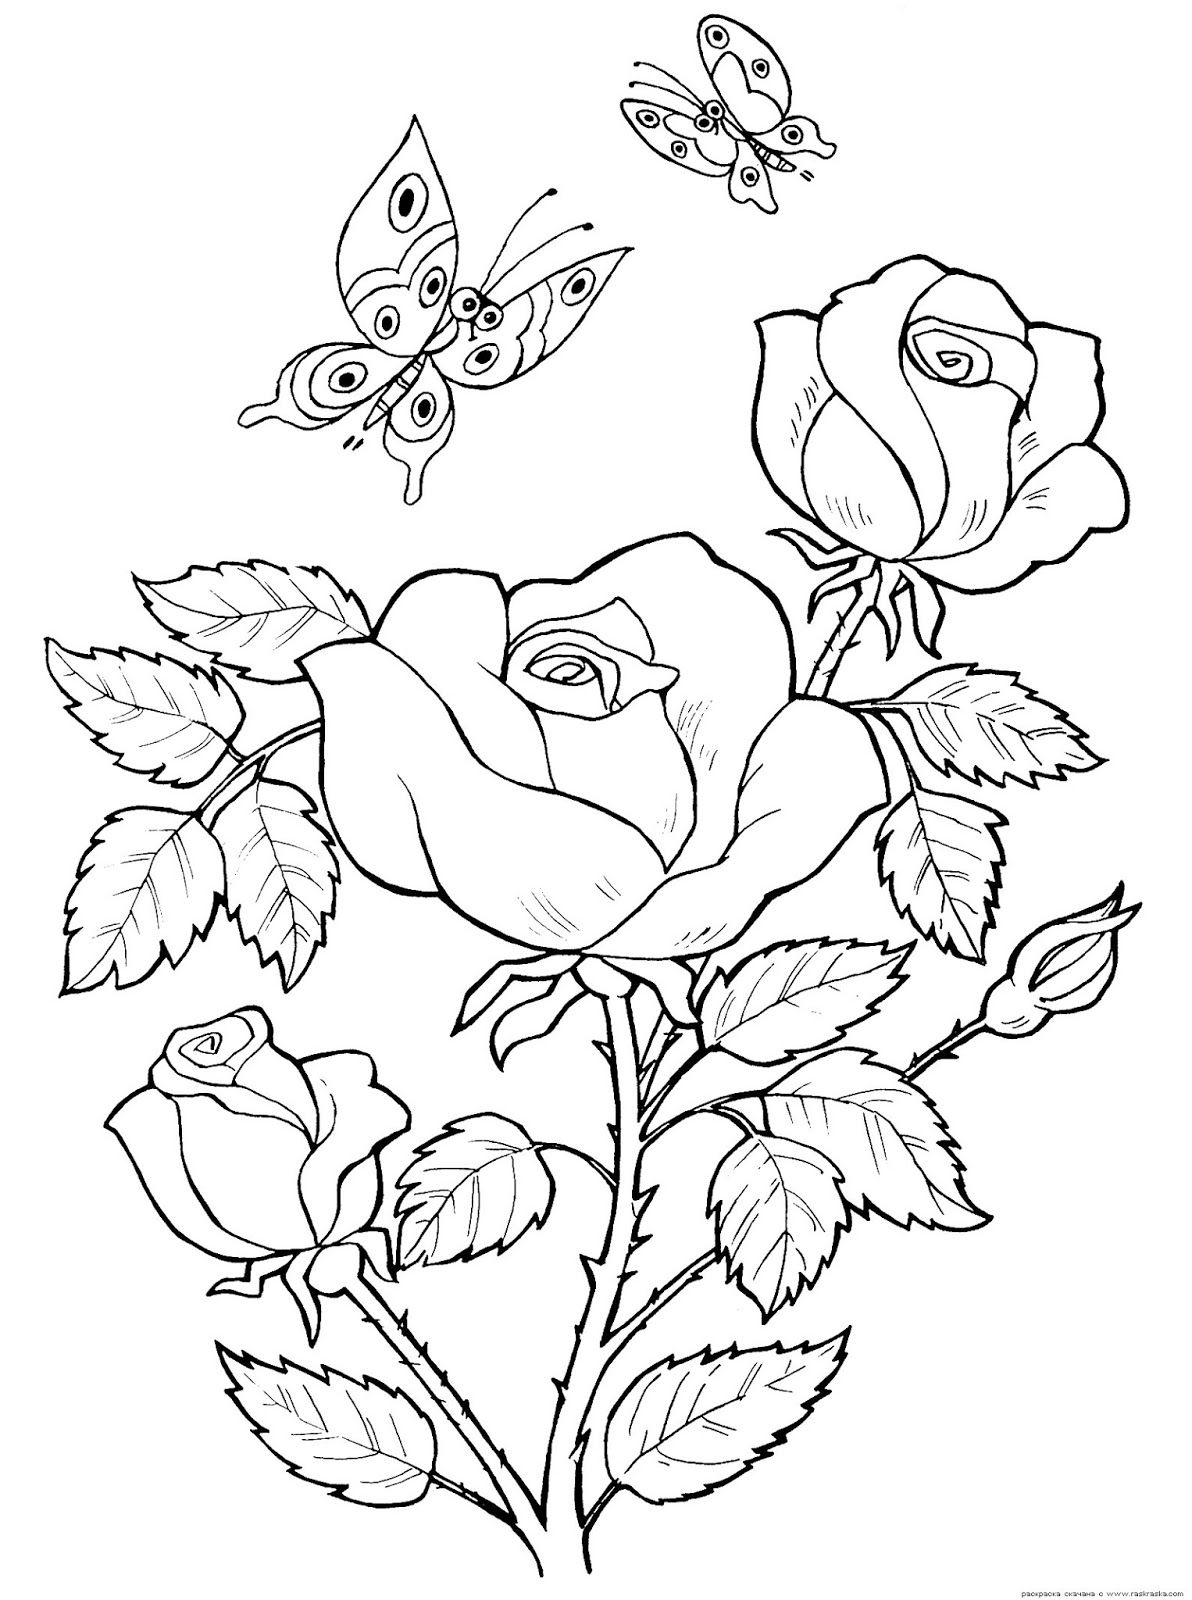 Coloring+pages+of+flowers+-+Rose+5a.gif (1192×1600) | Coloring pages ...